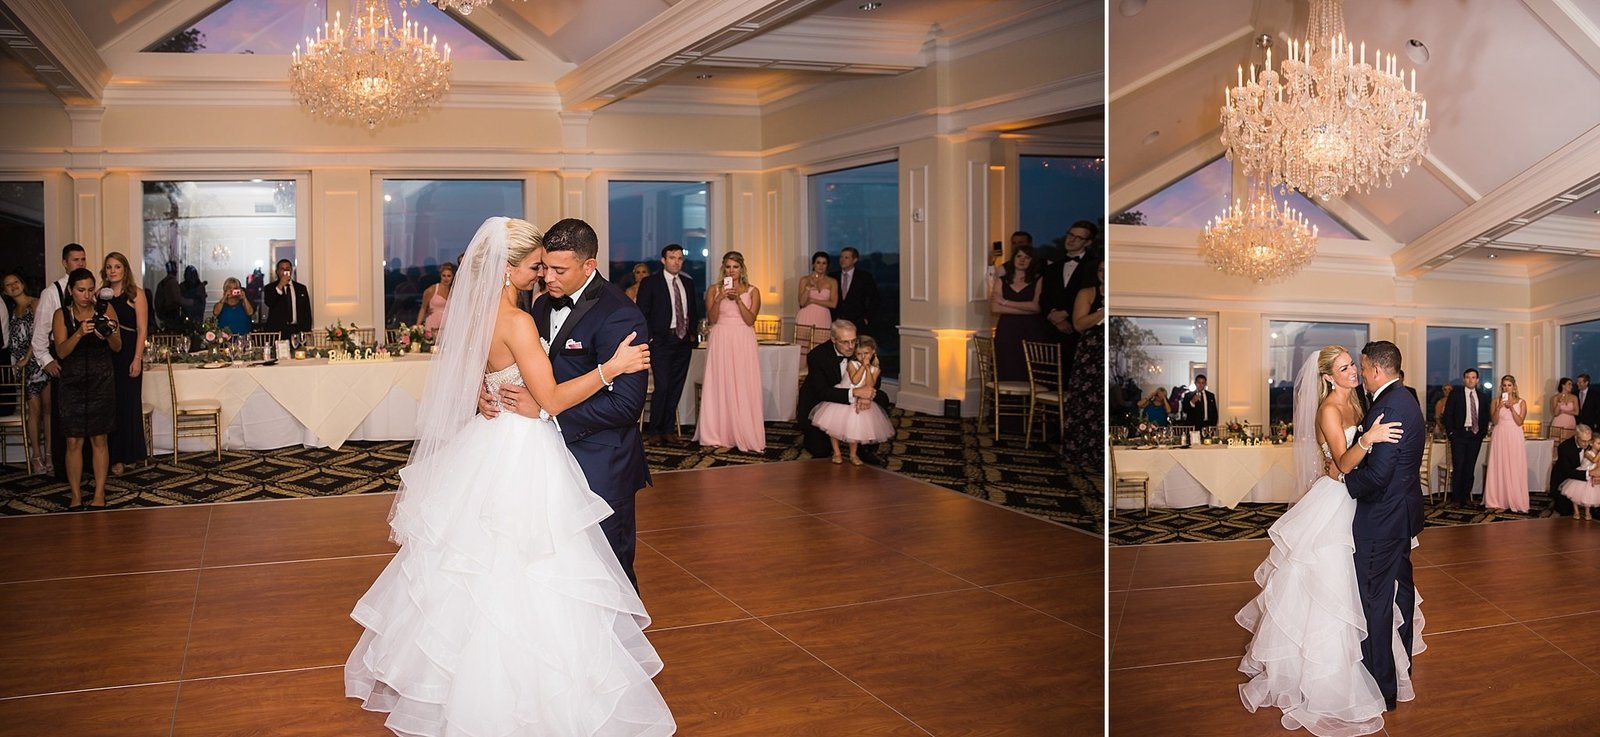 M Harris Studios_Trump National Golf Club Wedding_bride groom first dance